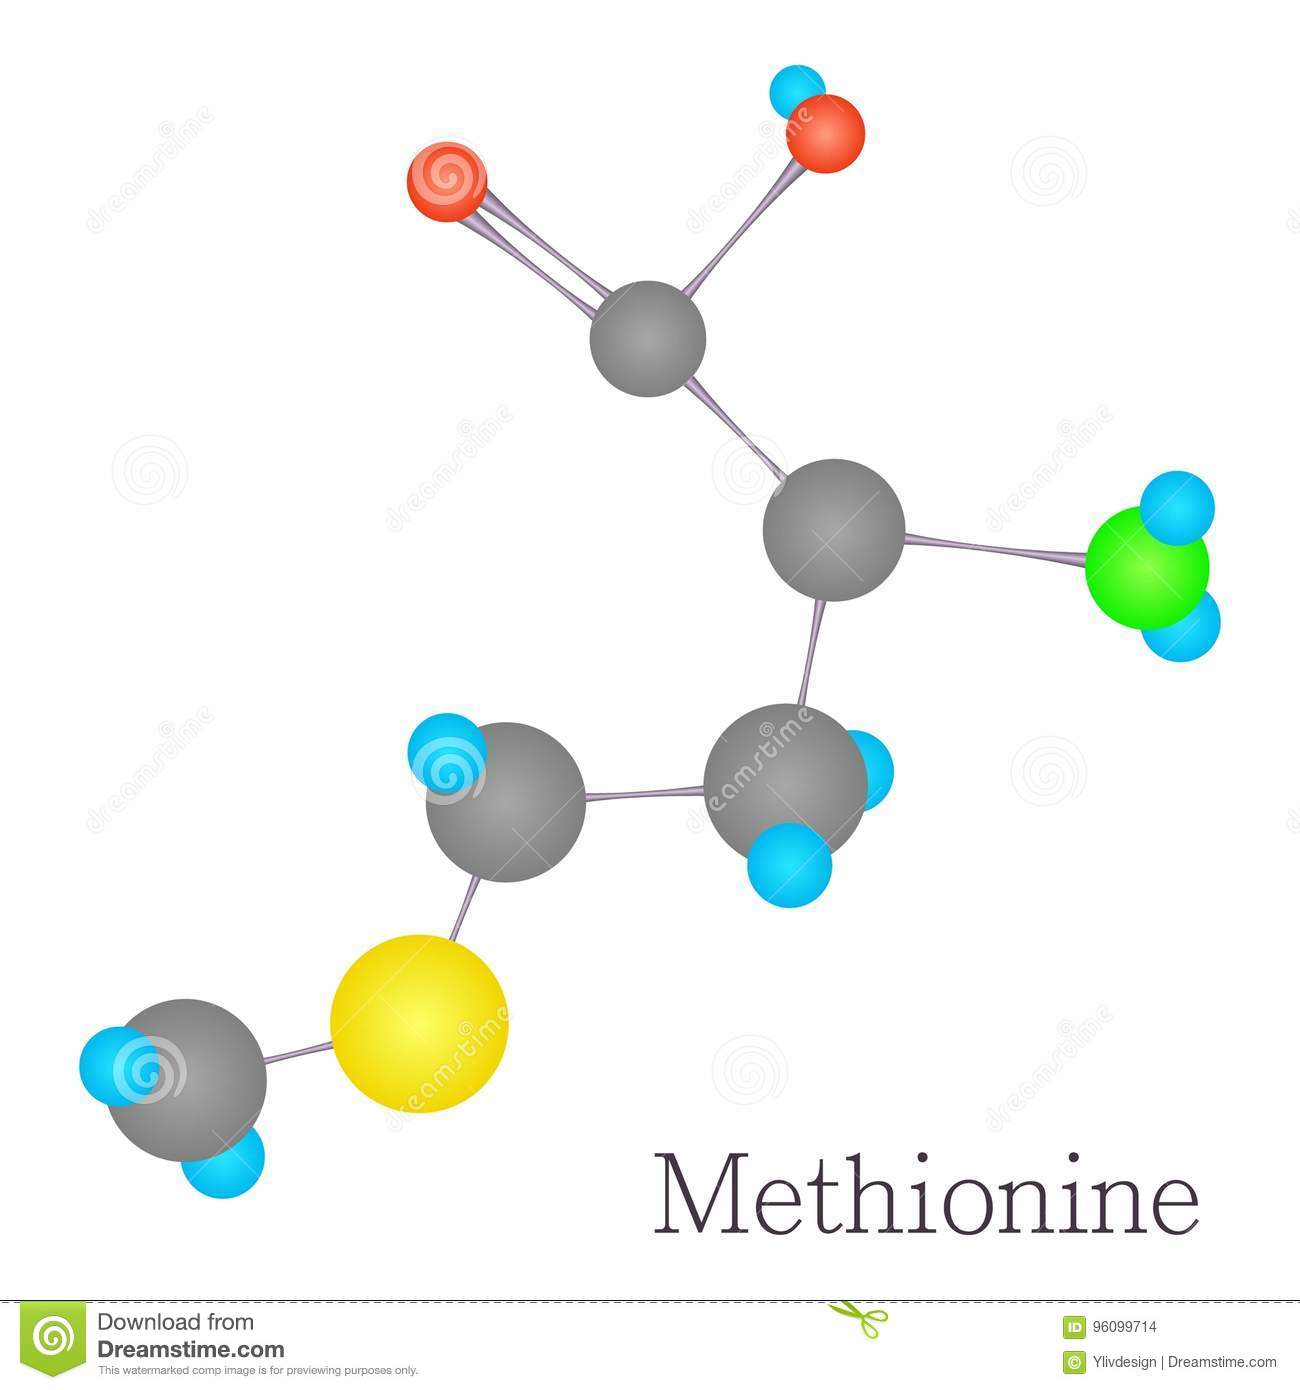 methionine 3d molecule chemical science stock vector illustration